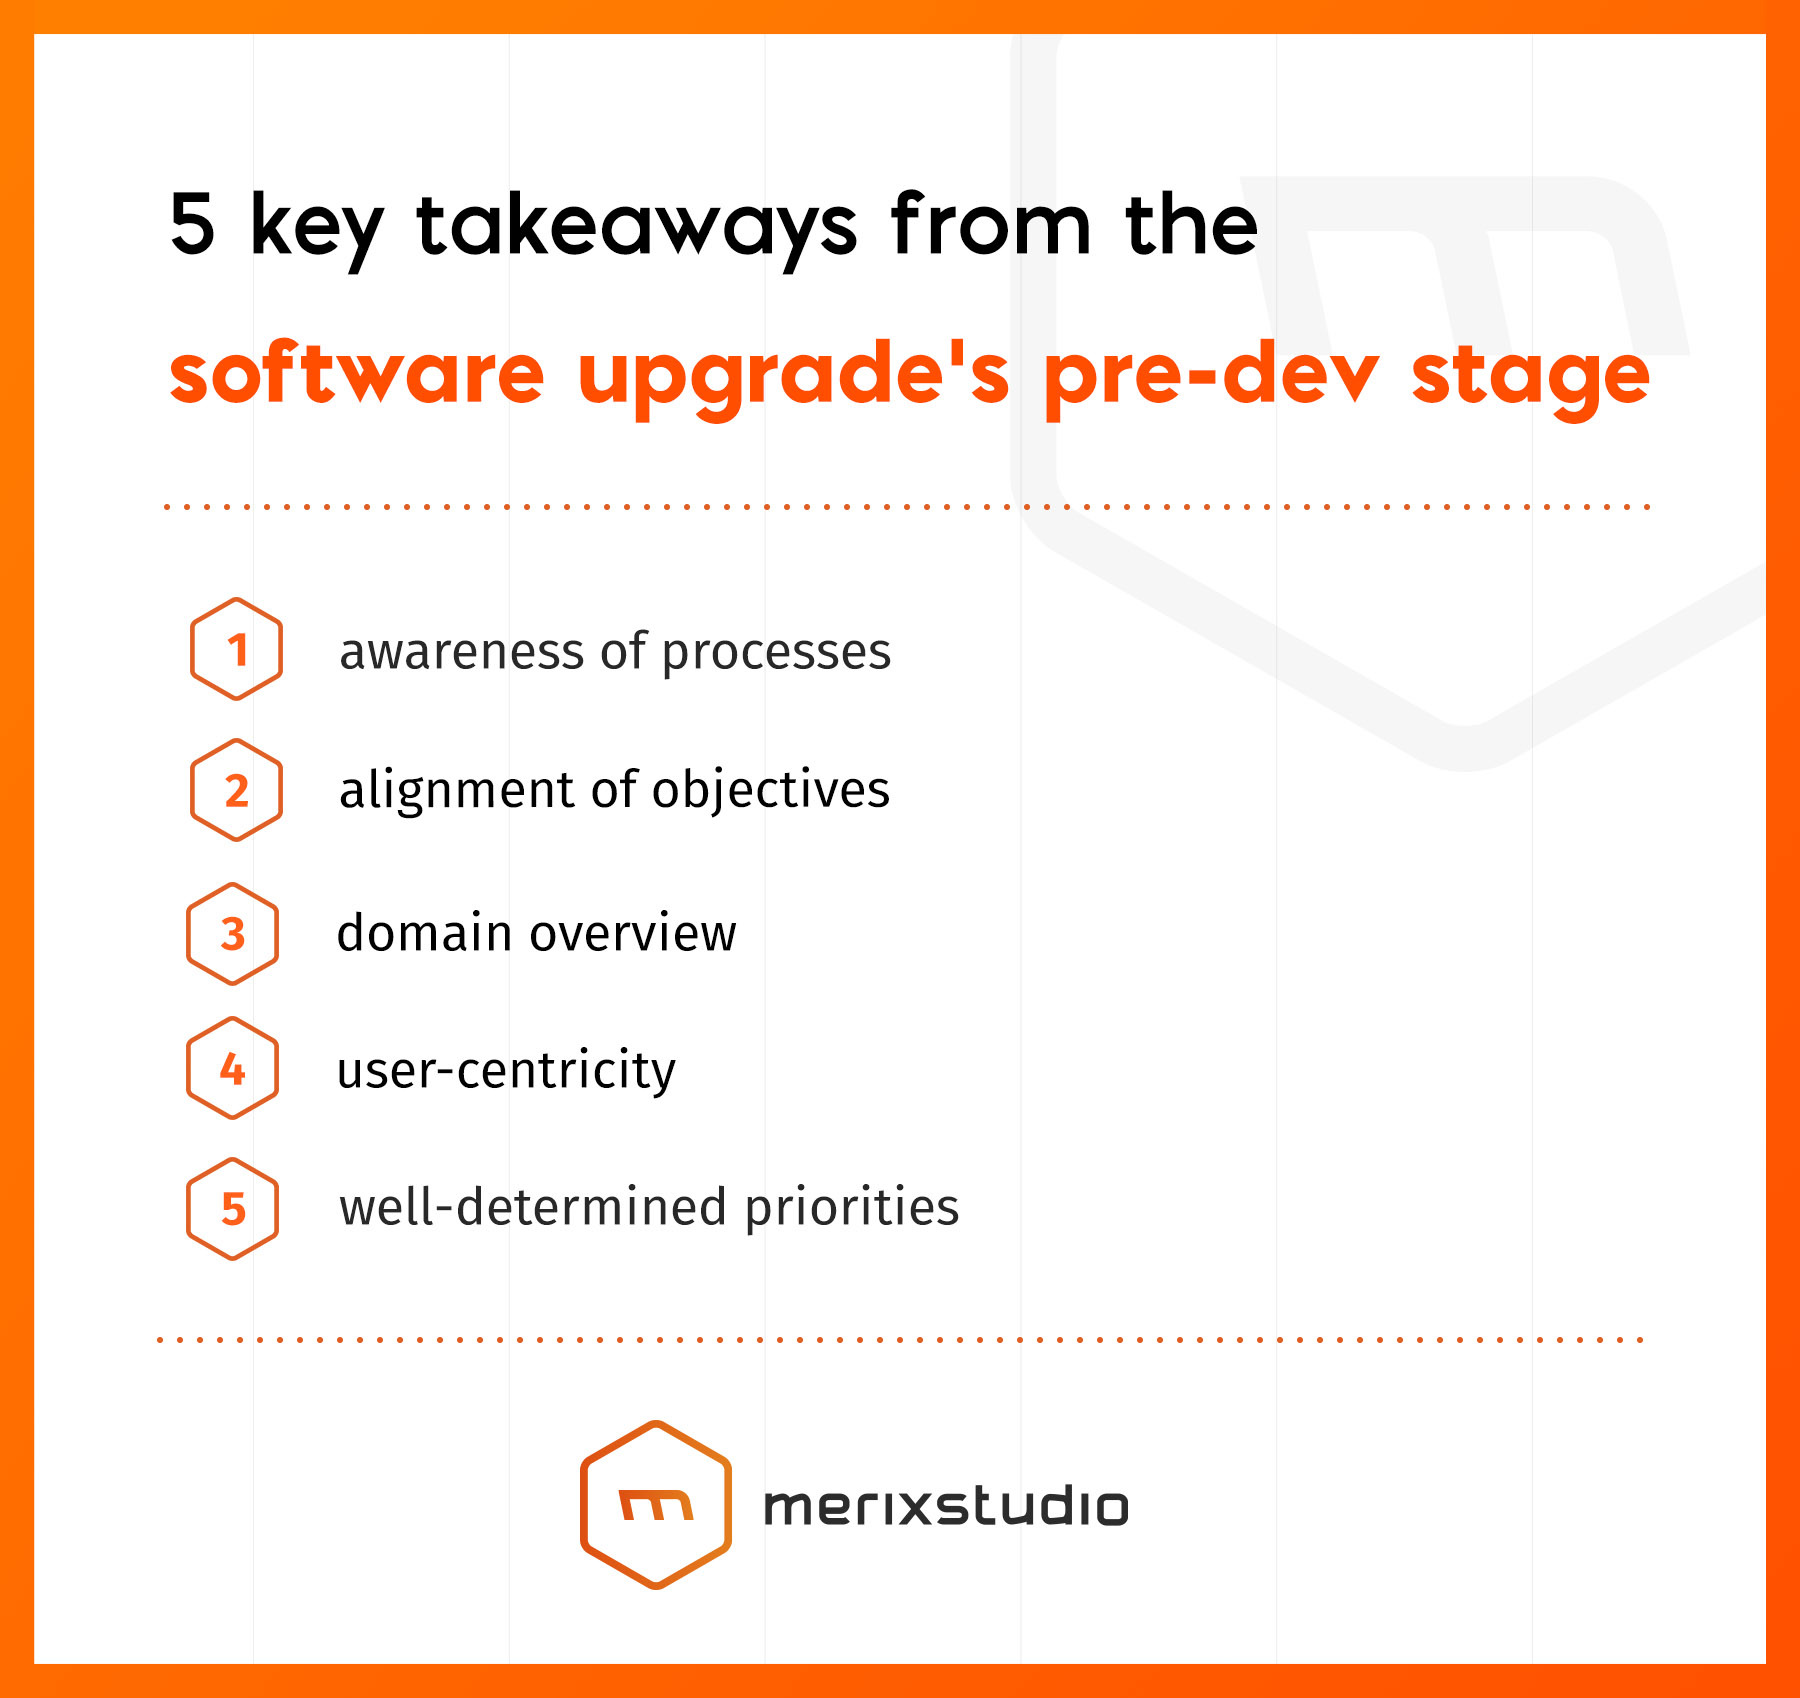 5 takeways from software upgrades pre-dev stage